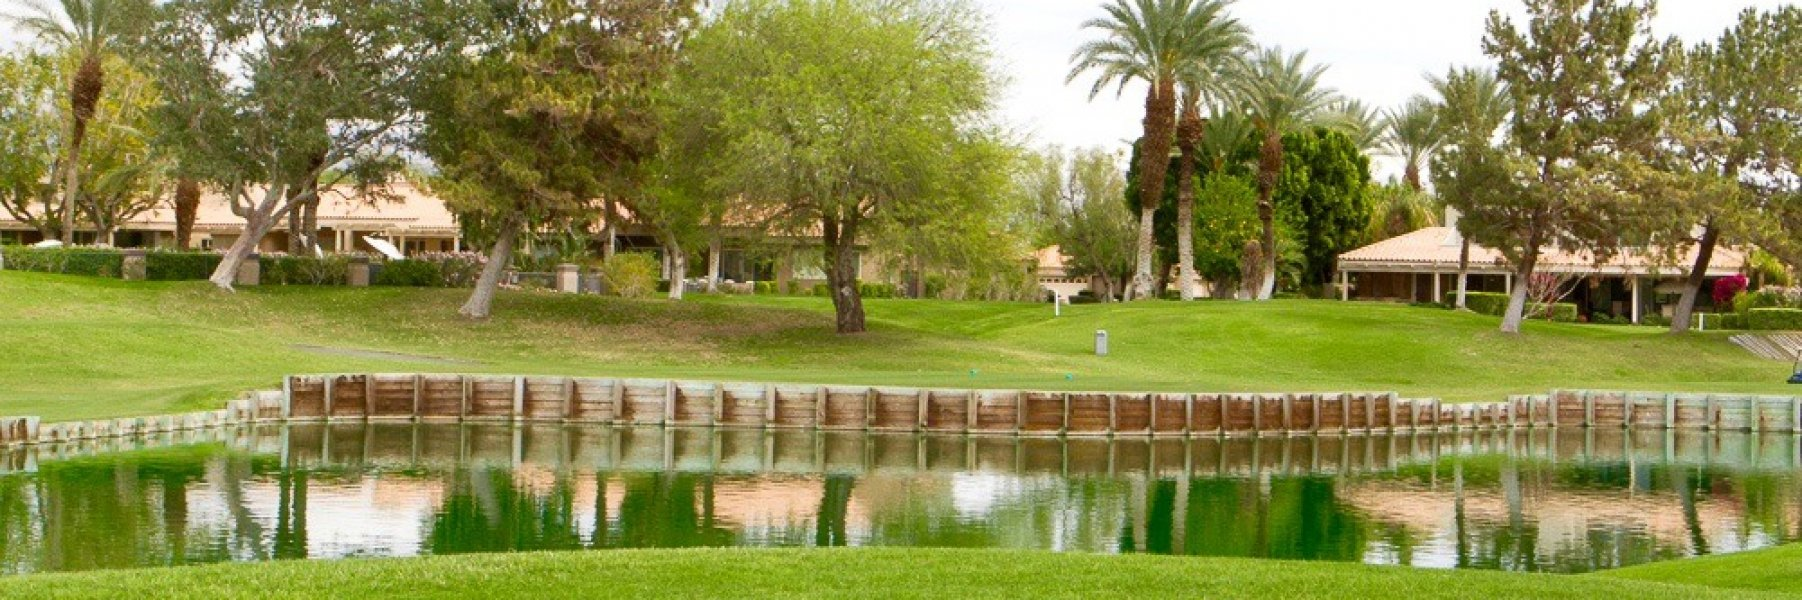 Mission Hills East is a community of homes in Rancho Mirage California